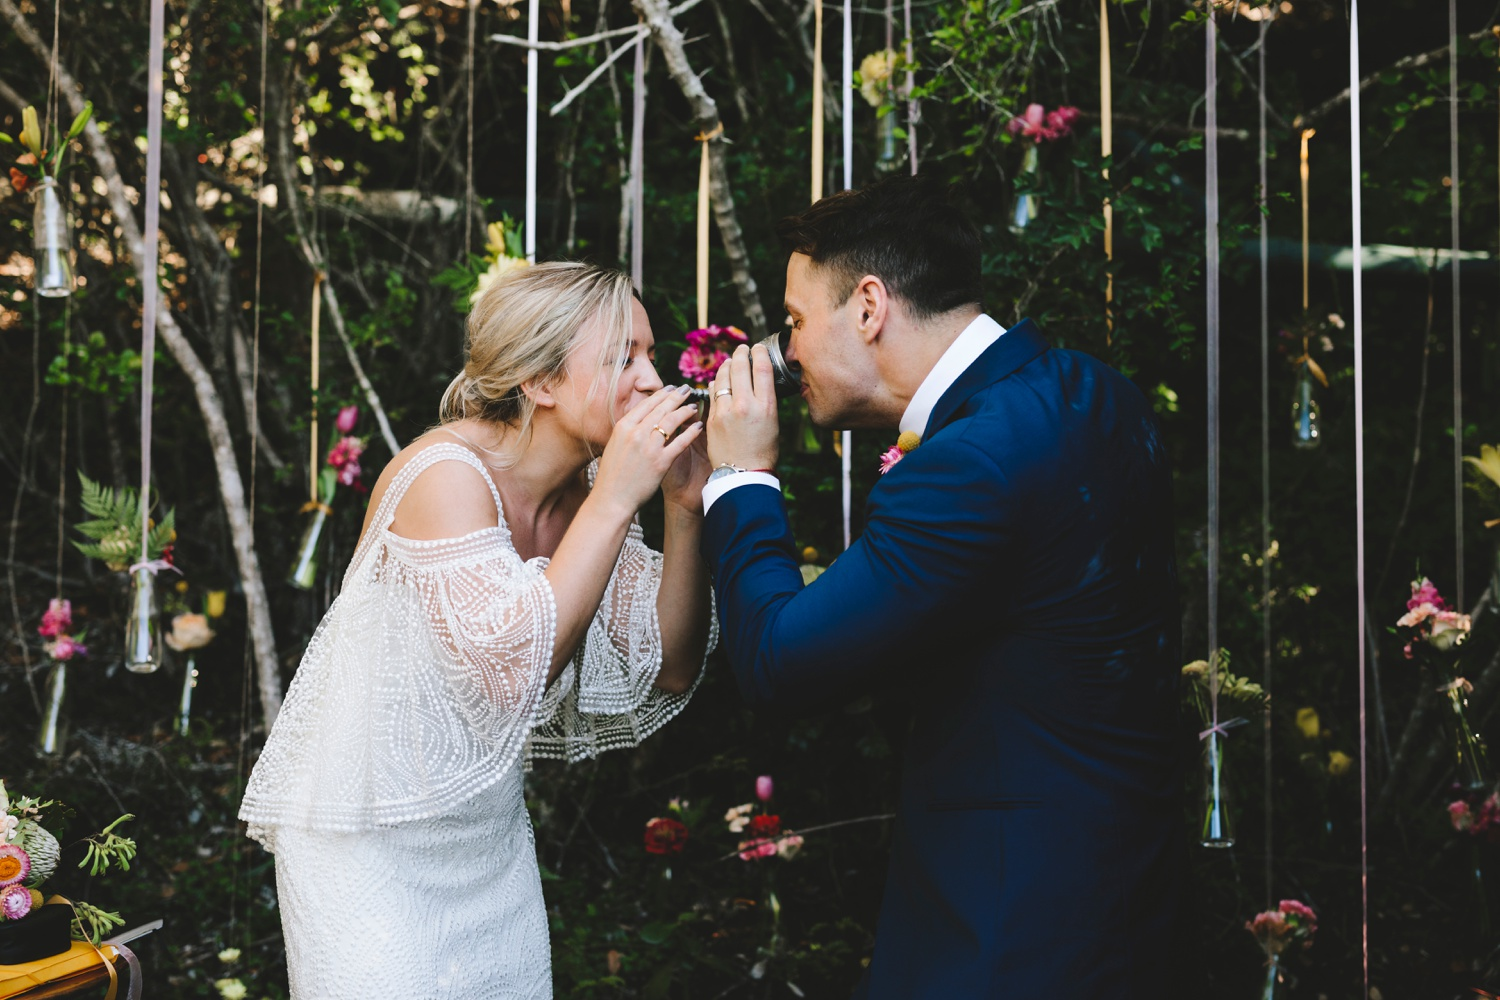 charlie_ray_photography_runaway_romance_elopement_emily_moon_plett_simple_boho_wedding_south_africa_bohemium_0057.jpg